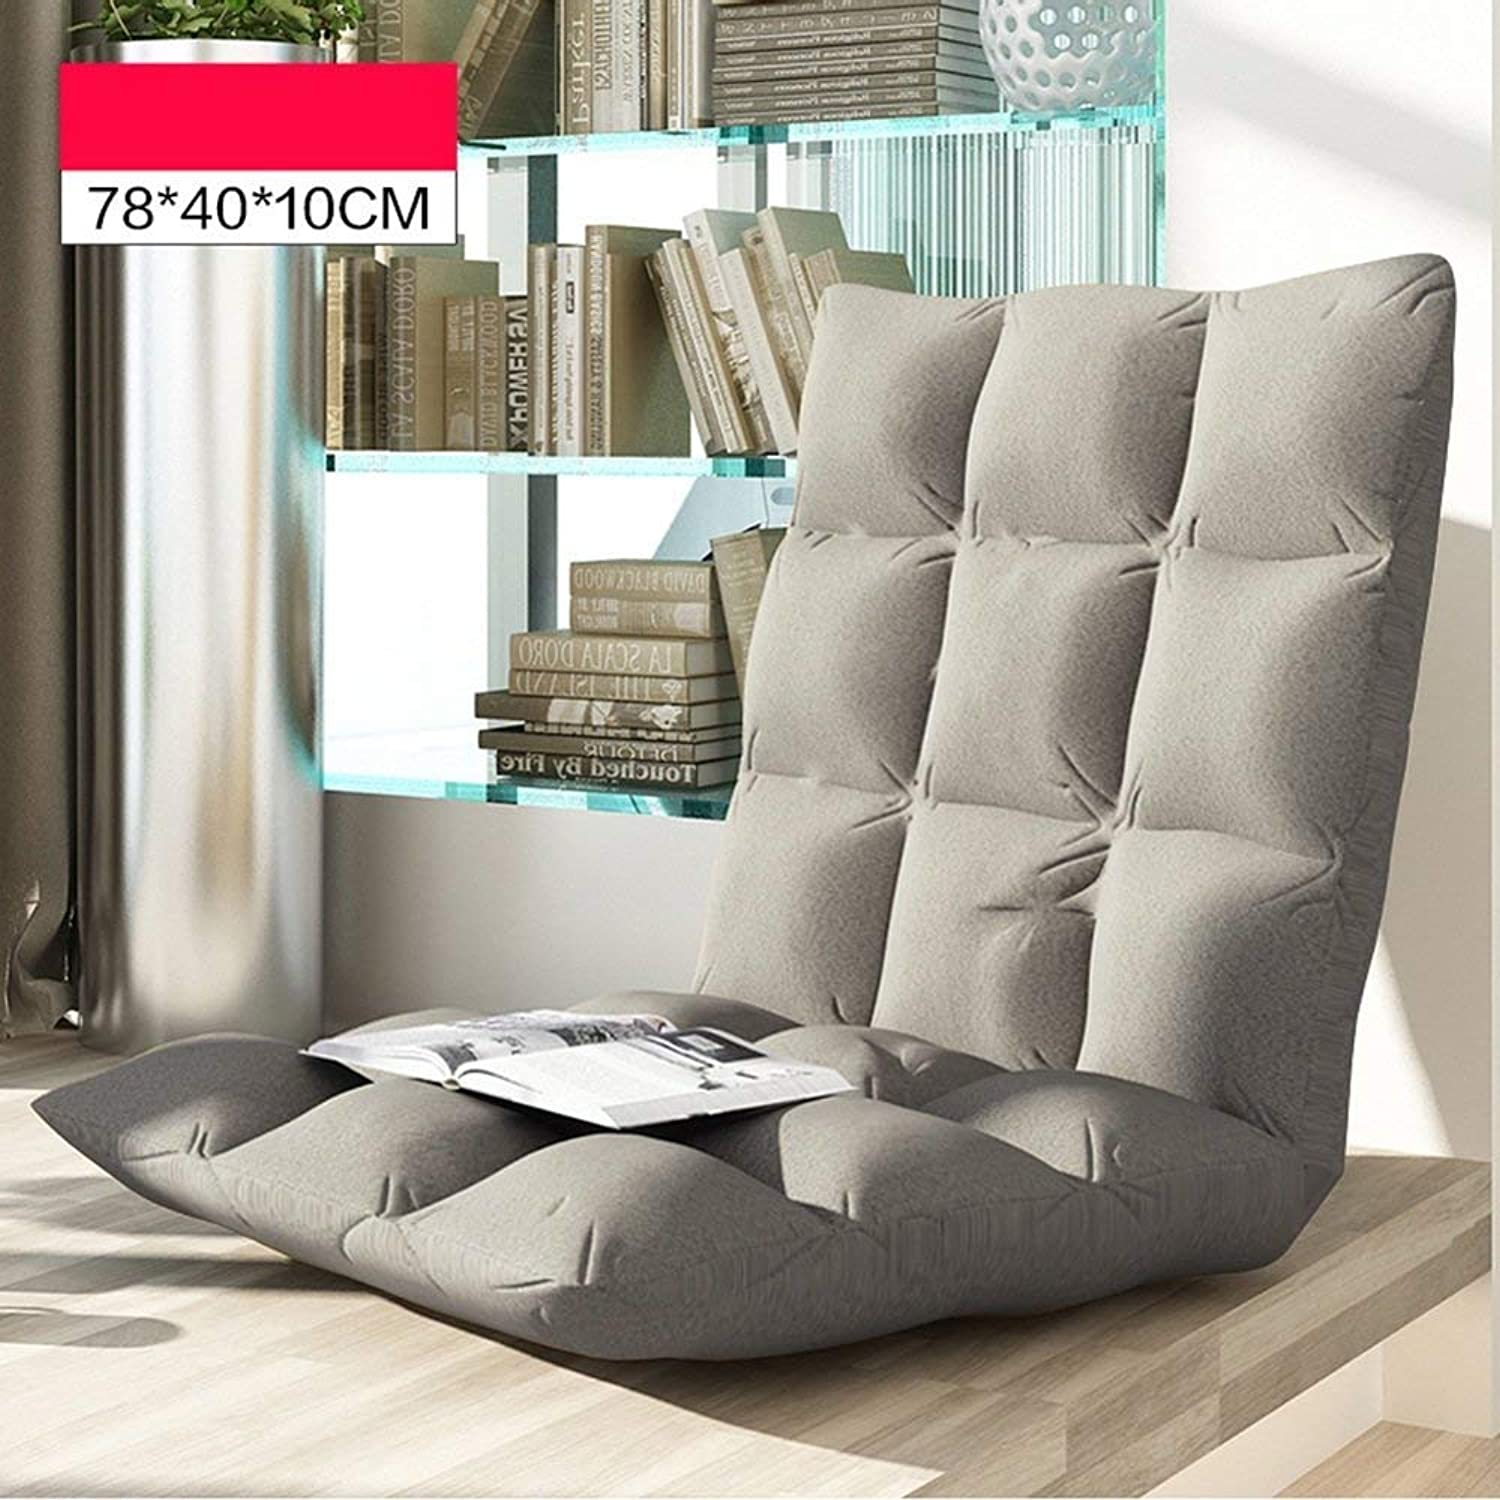 Lazy Sofa Cushion Folding Chair Bed Chair Bay Window Chair Lazy Couch (color  C, Size  78  40  10cm)